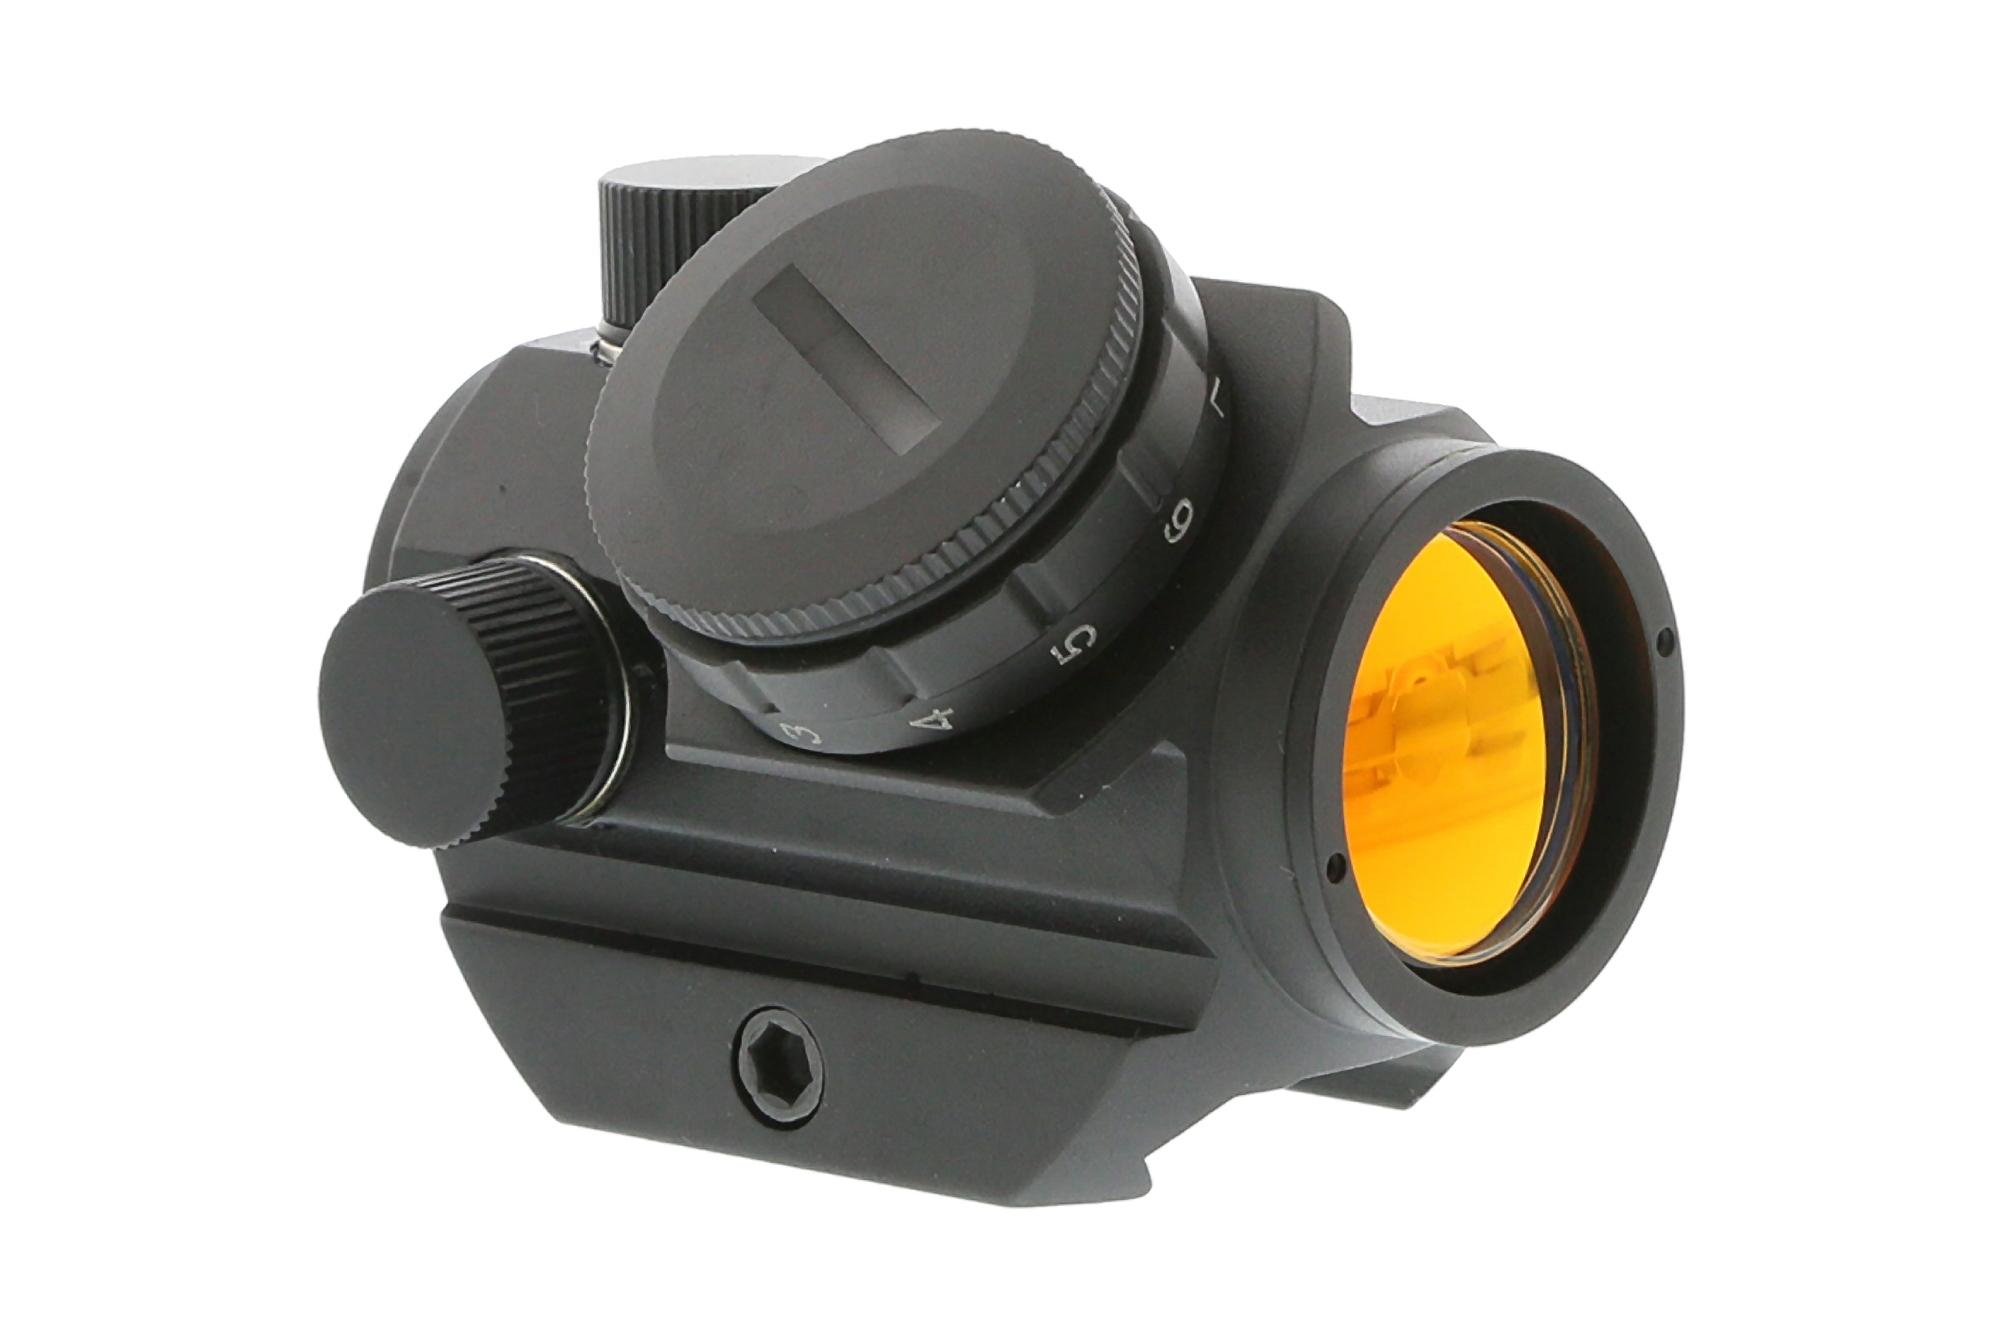 The AR-15 red dot sight from Bushnell optics features a 3 moa red dot and 11 illumination settings